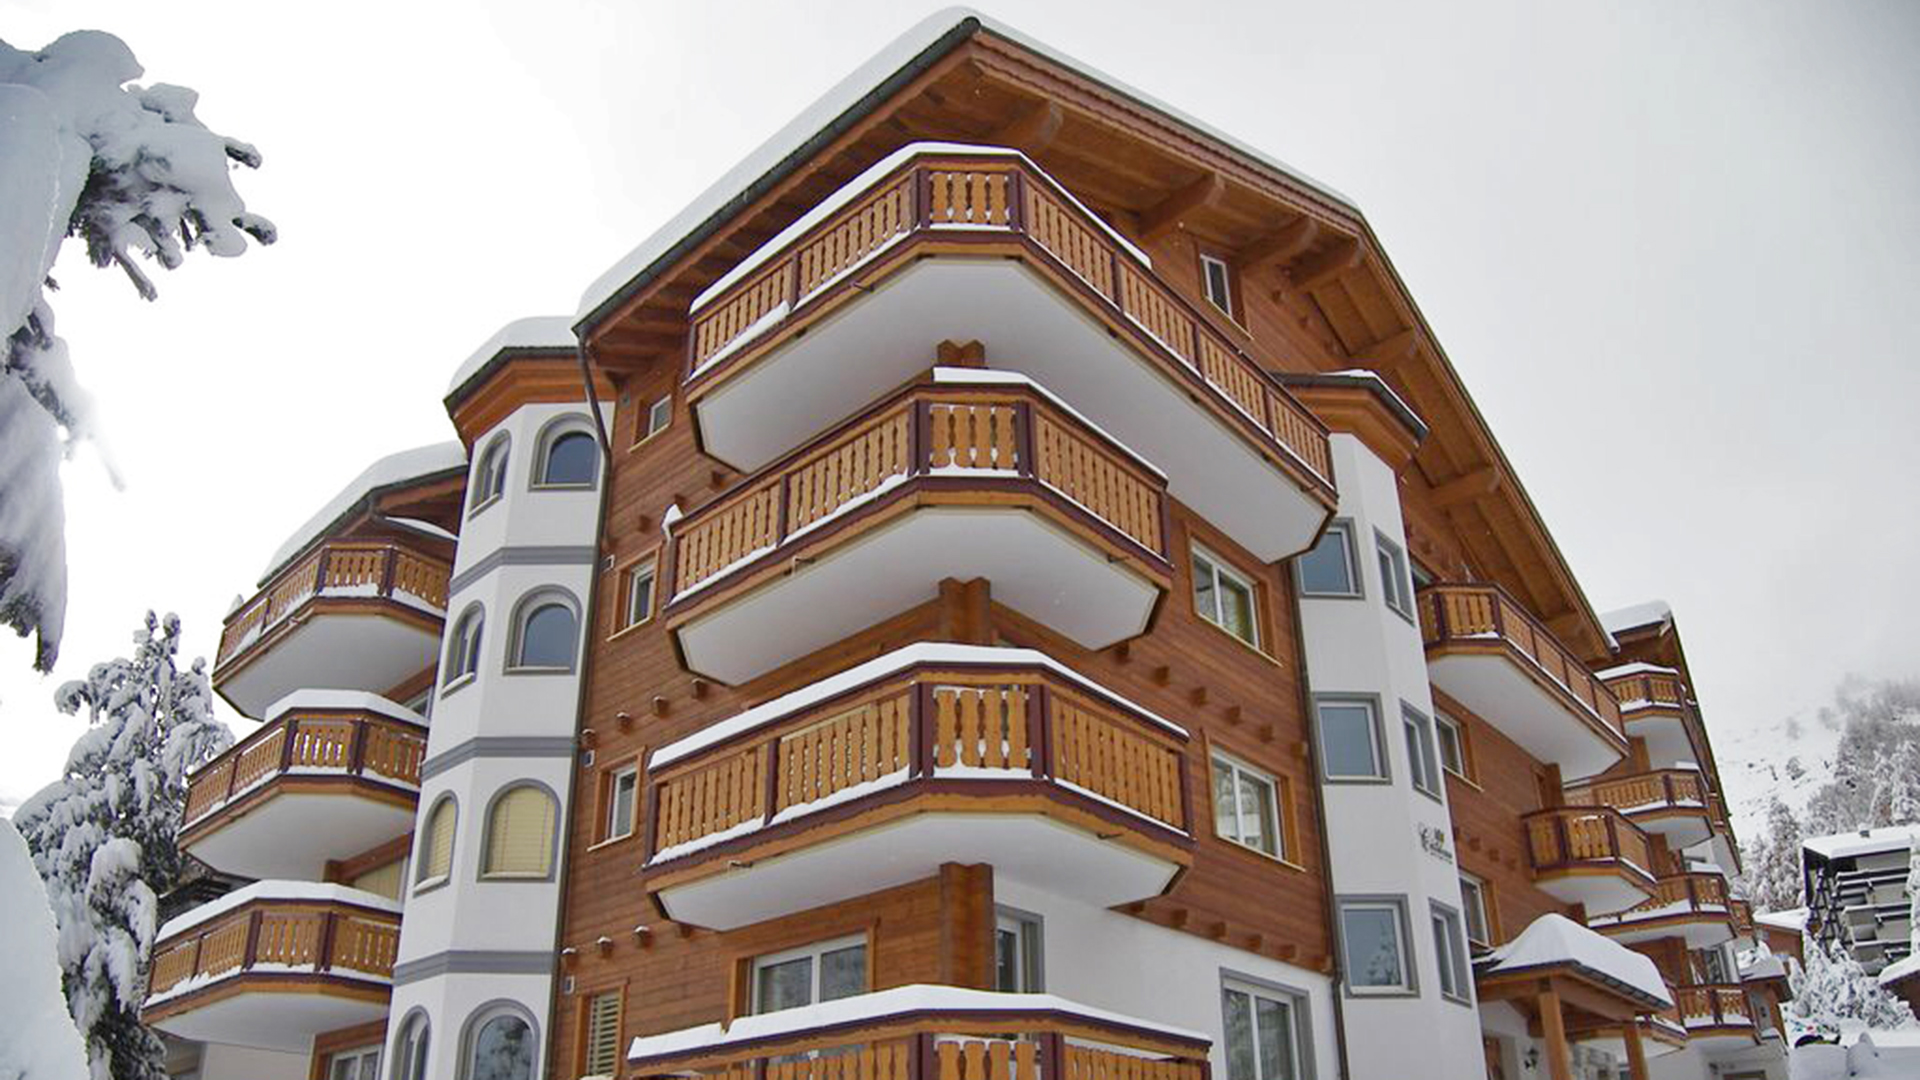 Chateau B 3 Apartments, Switzerland